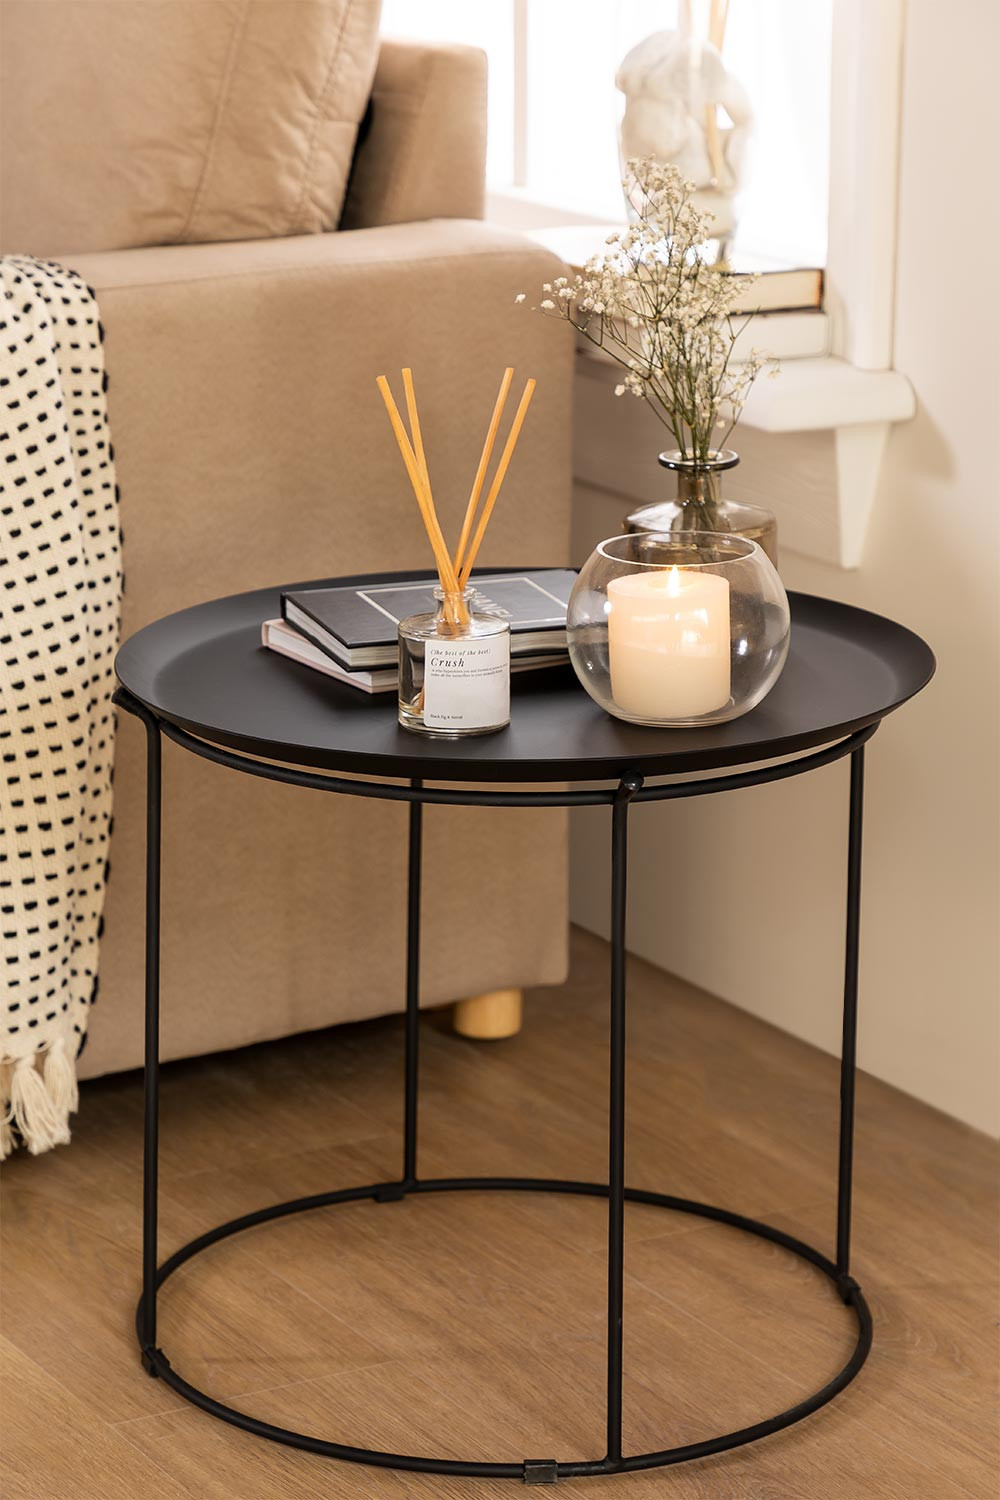 Thuin Table, gallery image 1